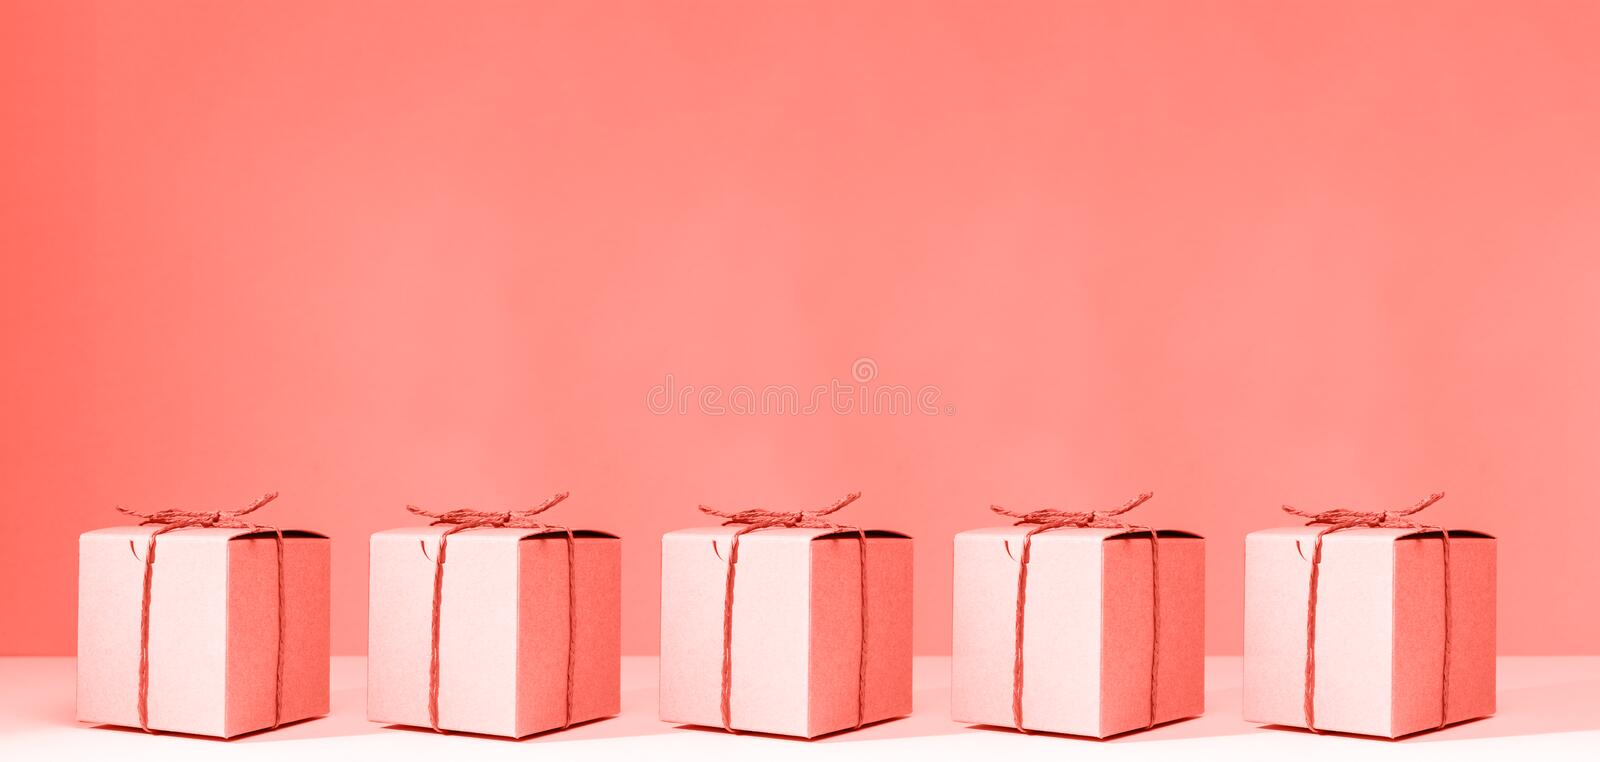 Craft cardboard gift boxes on the solid pink background. Holiday and gift concept. Pop art slyle . Living coral theme - color of. Craft cardboard gift boxes on royalty free stock photos